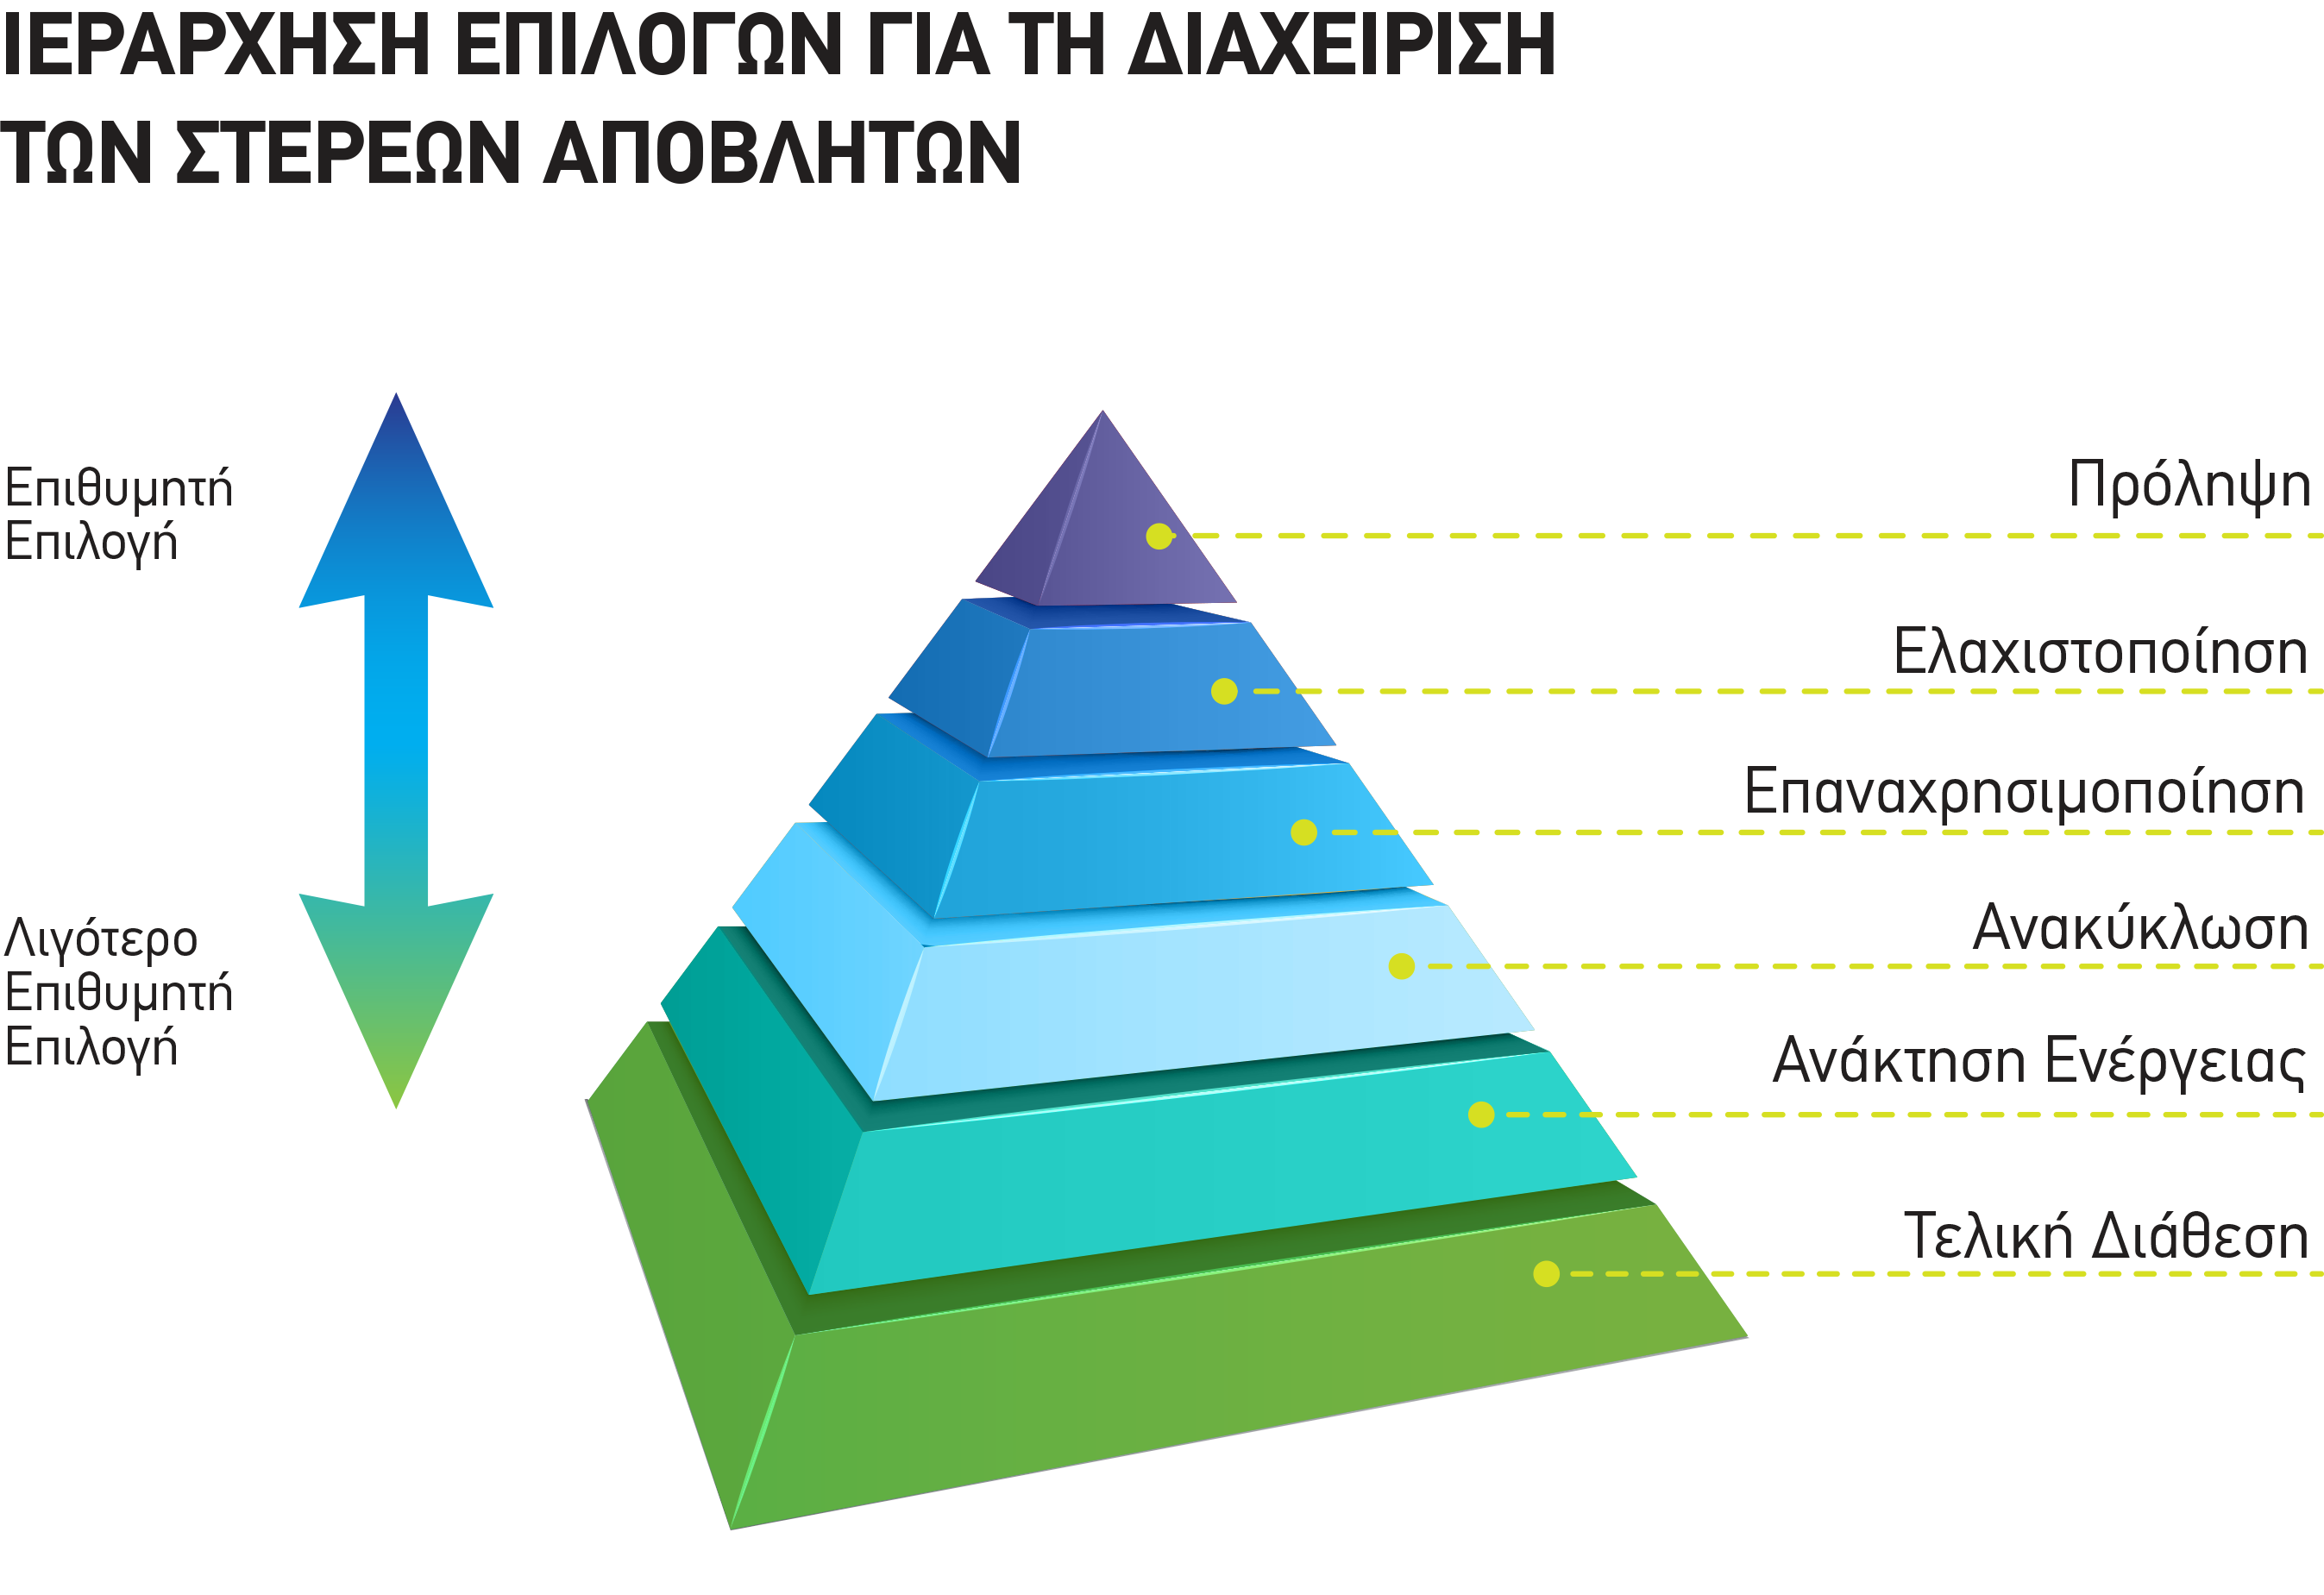 PYRAMID GRAPHICS GR